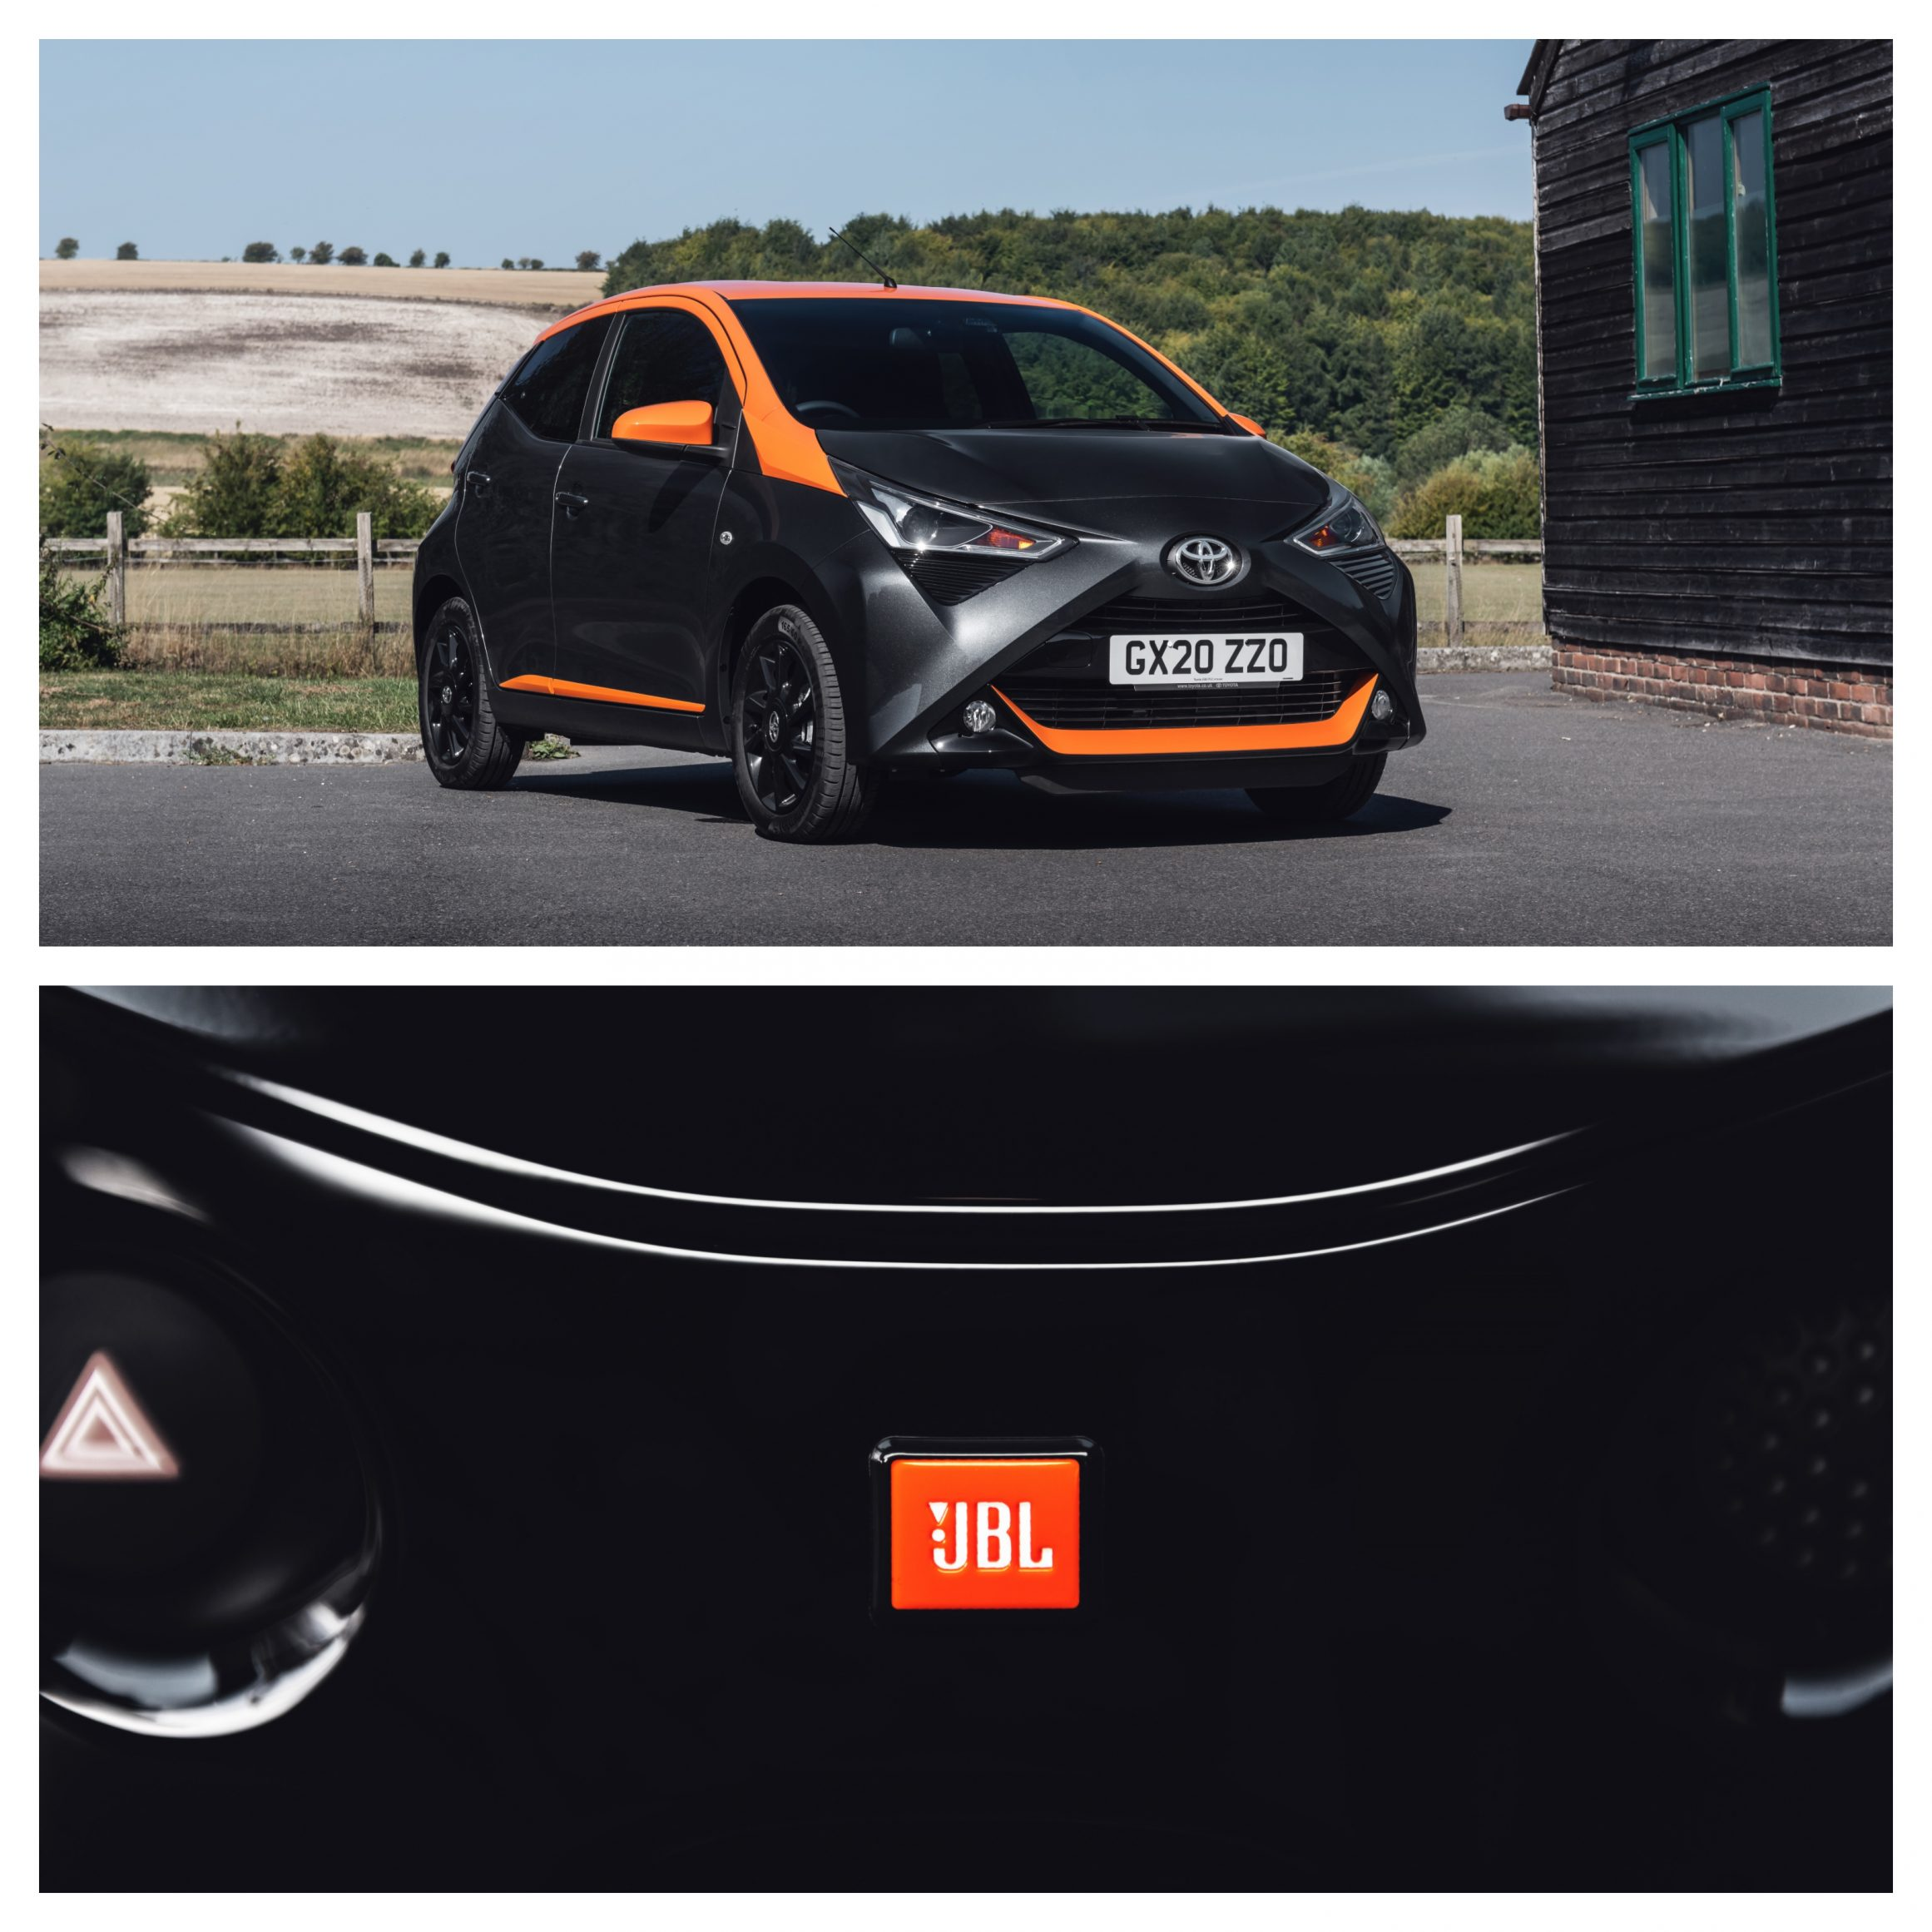 Toyota Aygo JBL Edition in orange and black